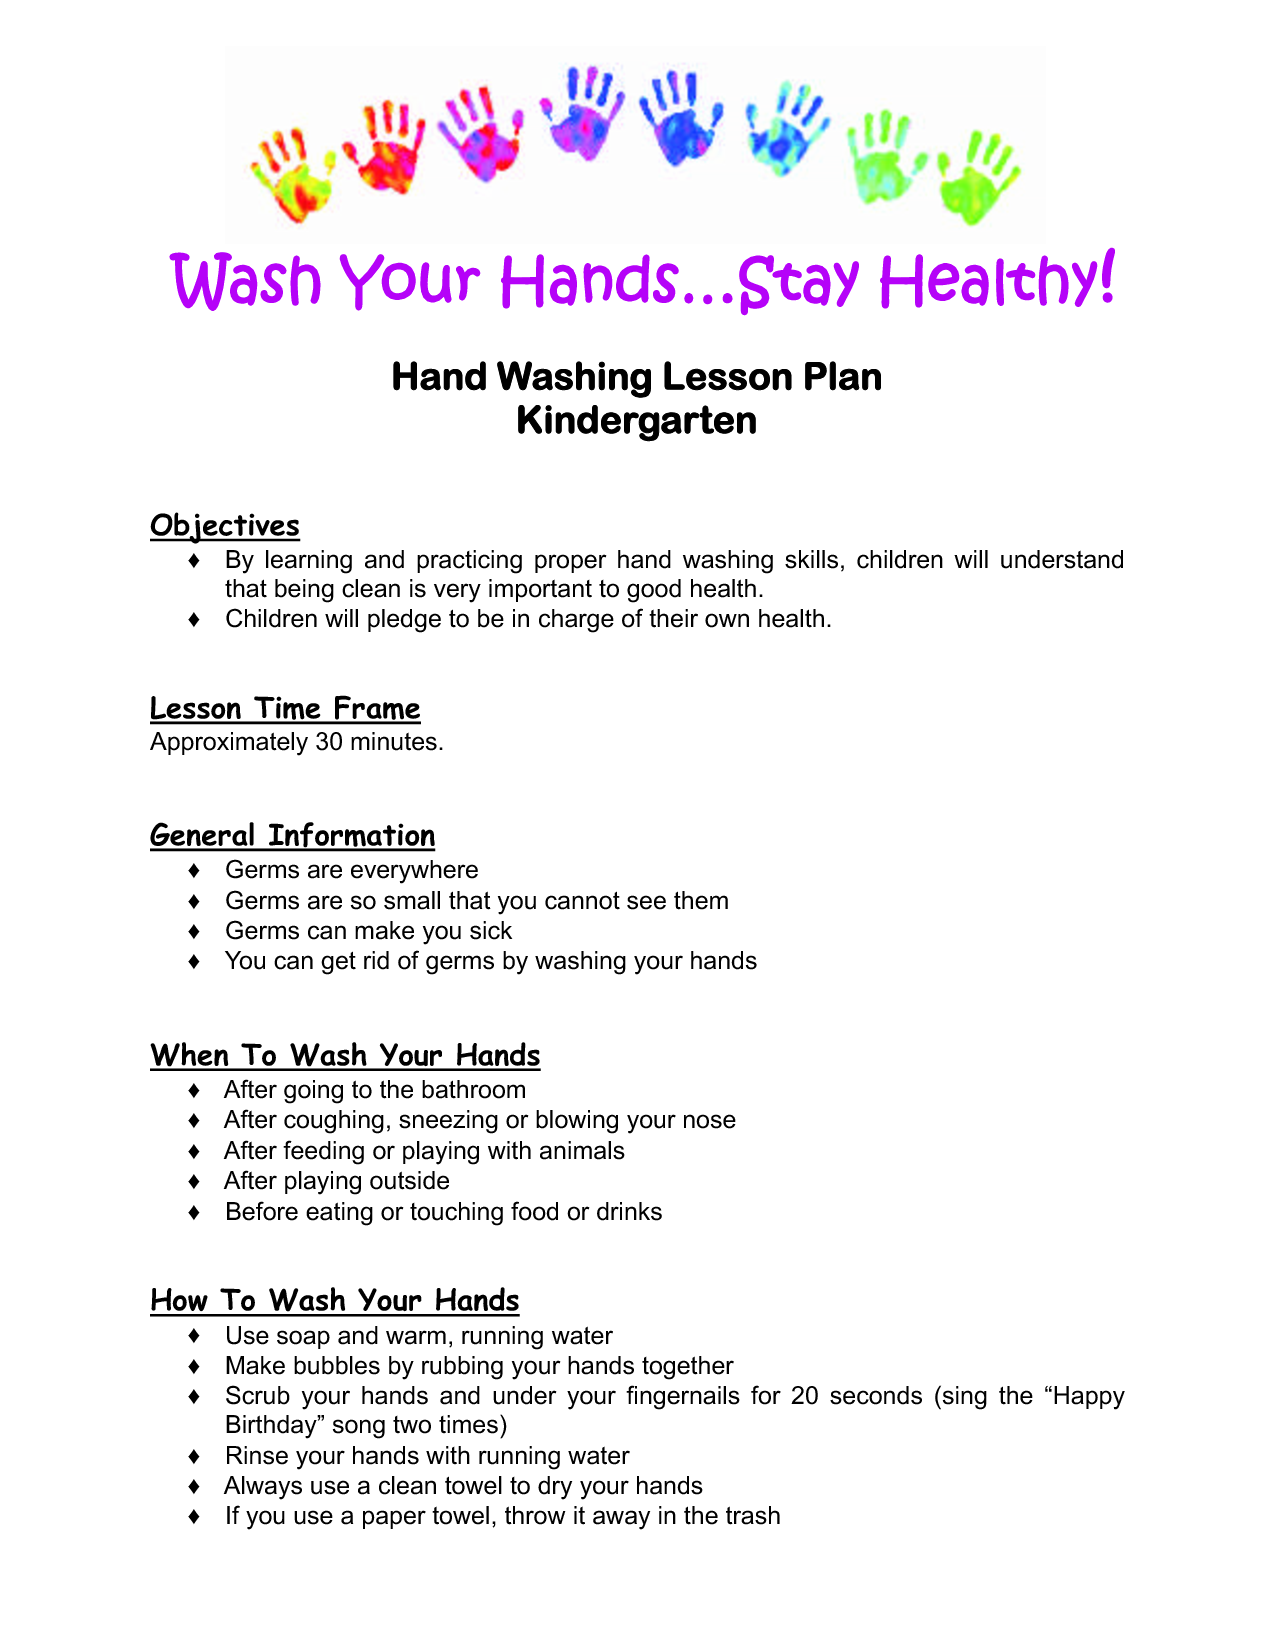 Kindergarten Lesson Plan  Hand Washing Lesson Plan Kindergarten